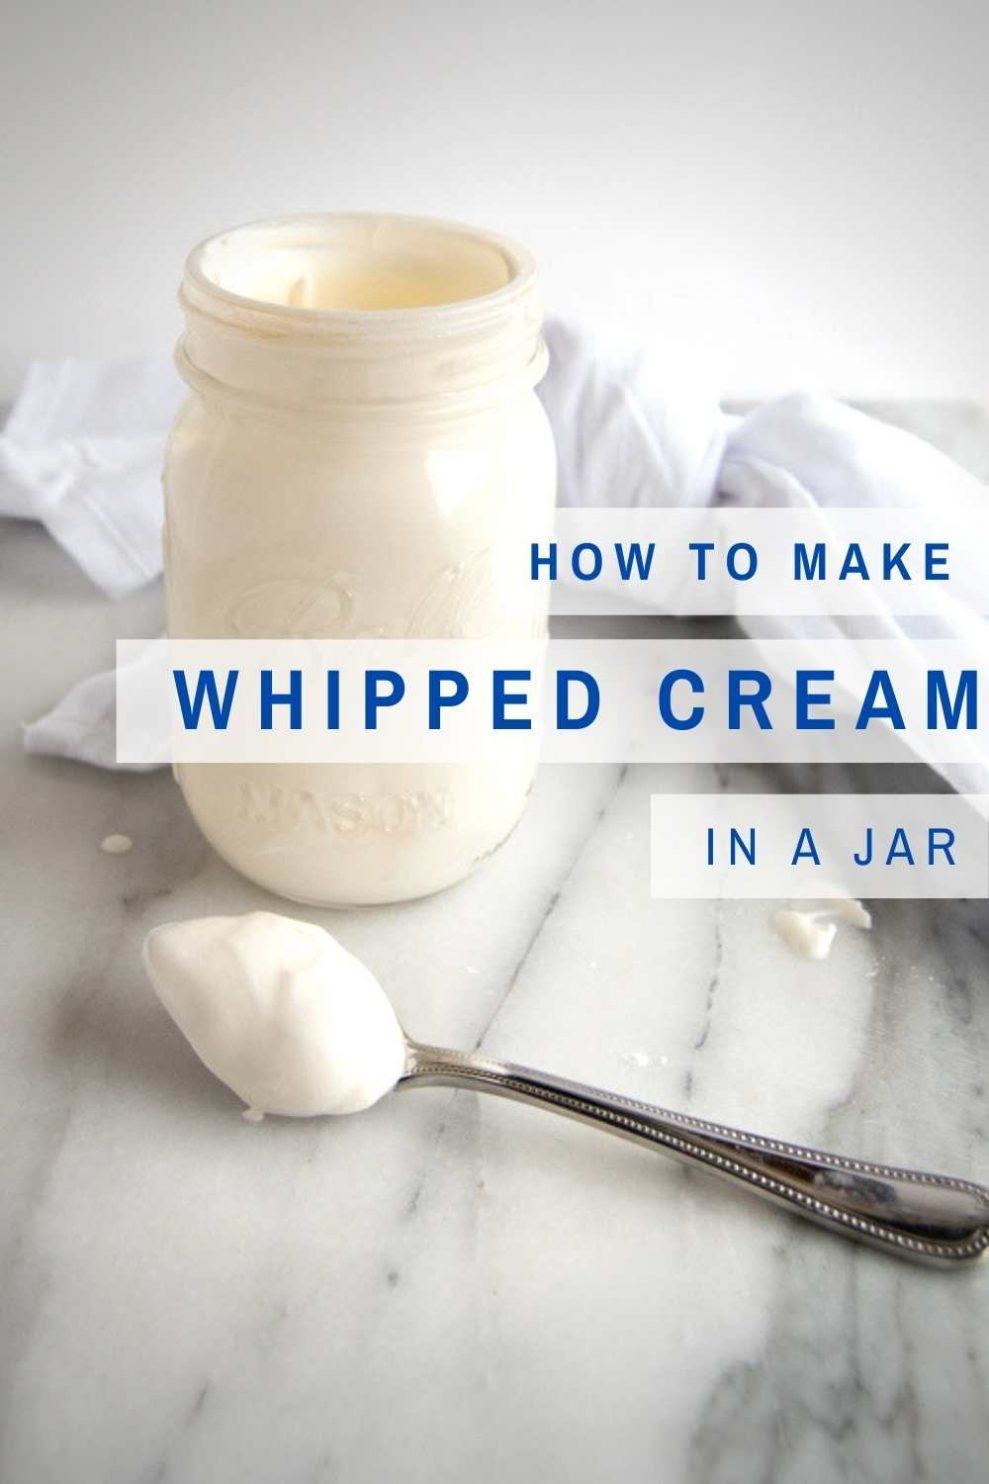 How To Make Whipped Cream In A Jar